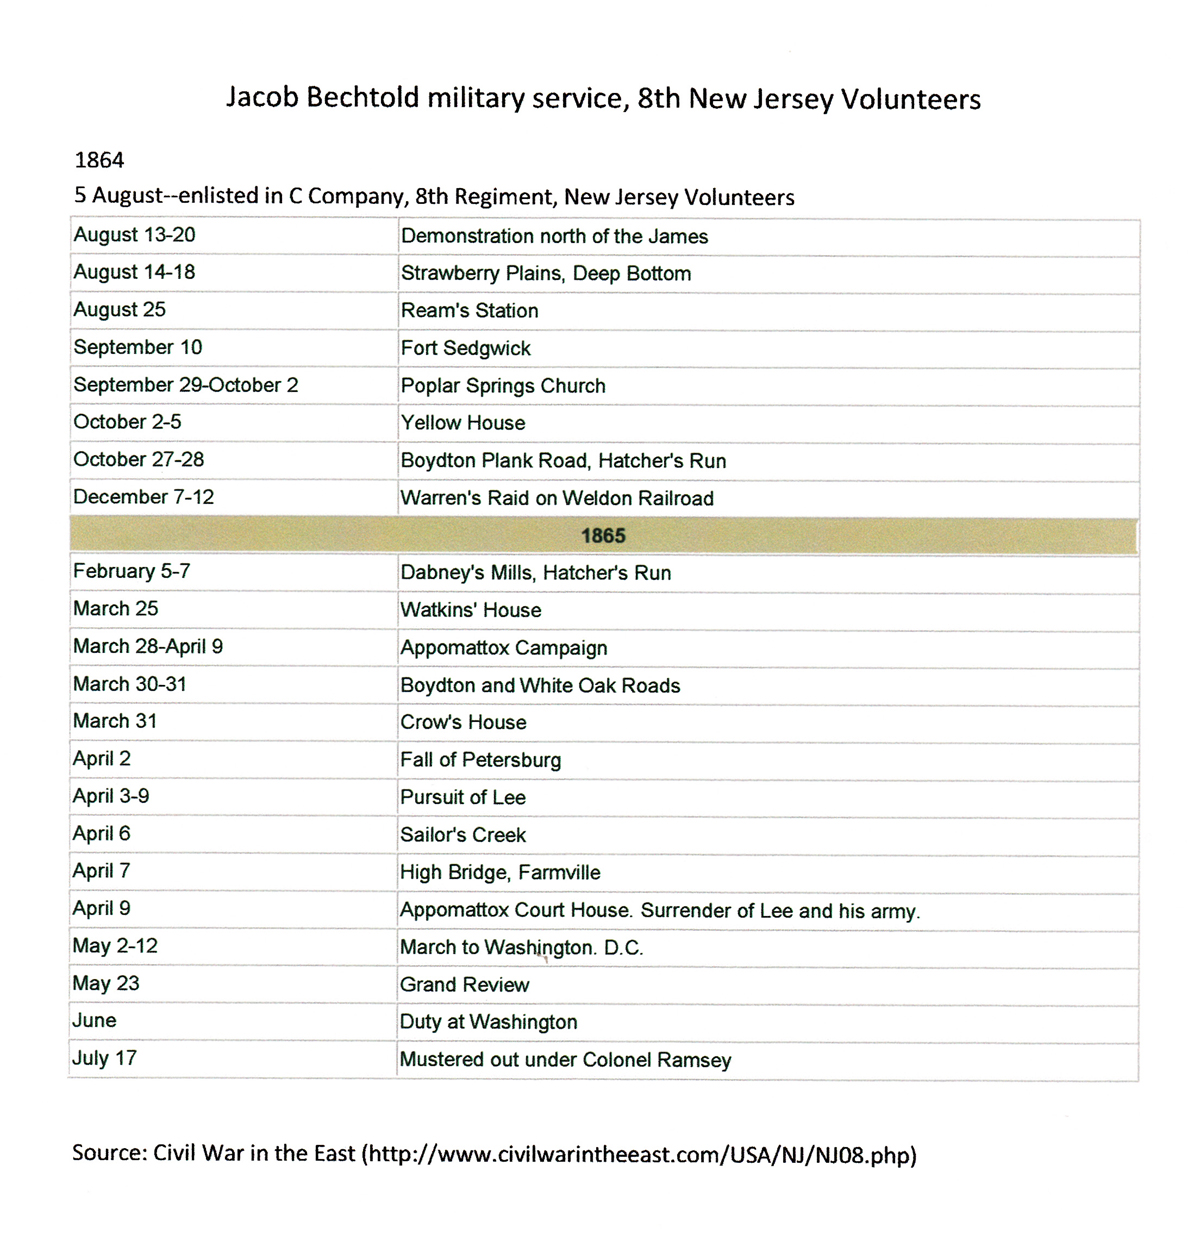 Jacob Bechtold's Civil War Record